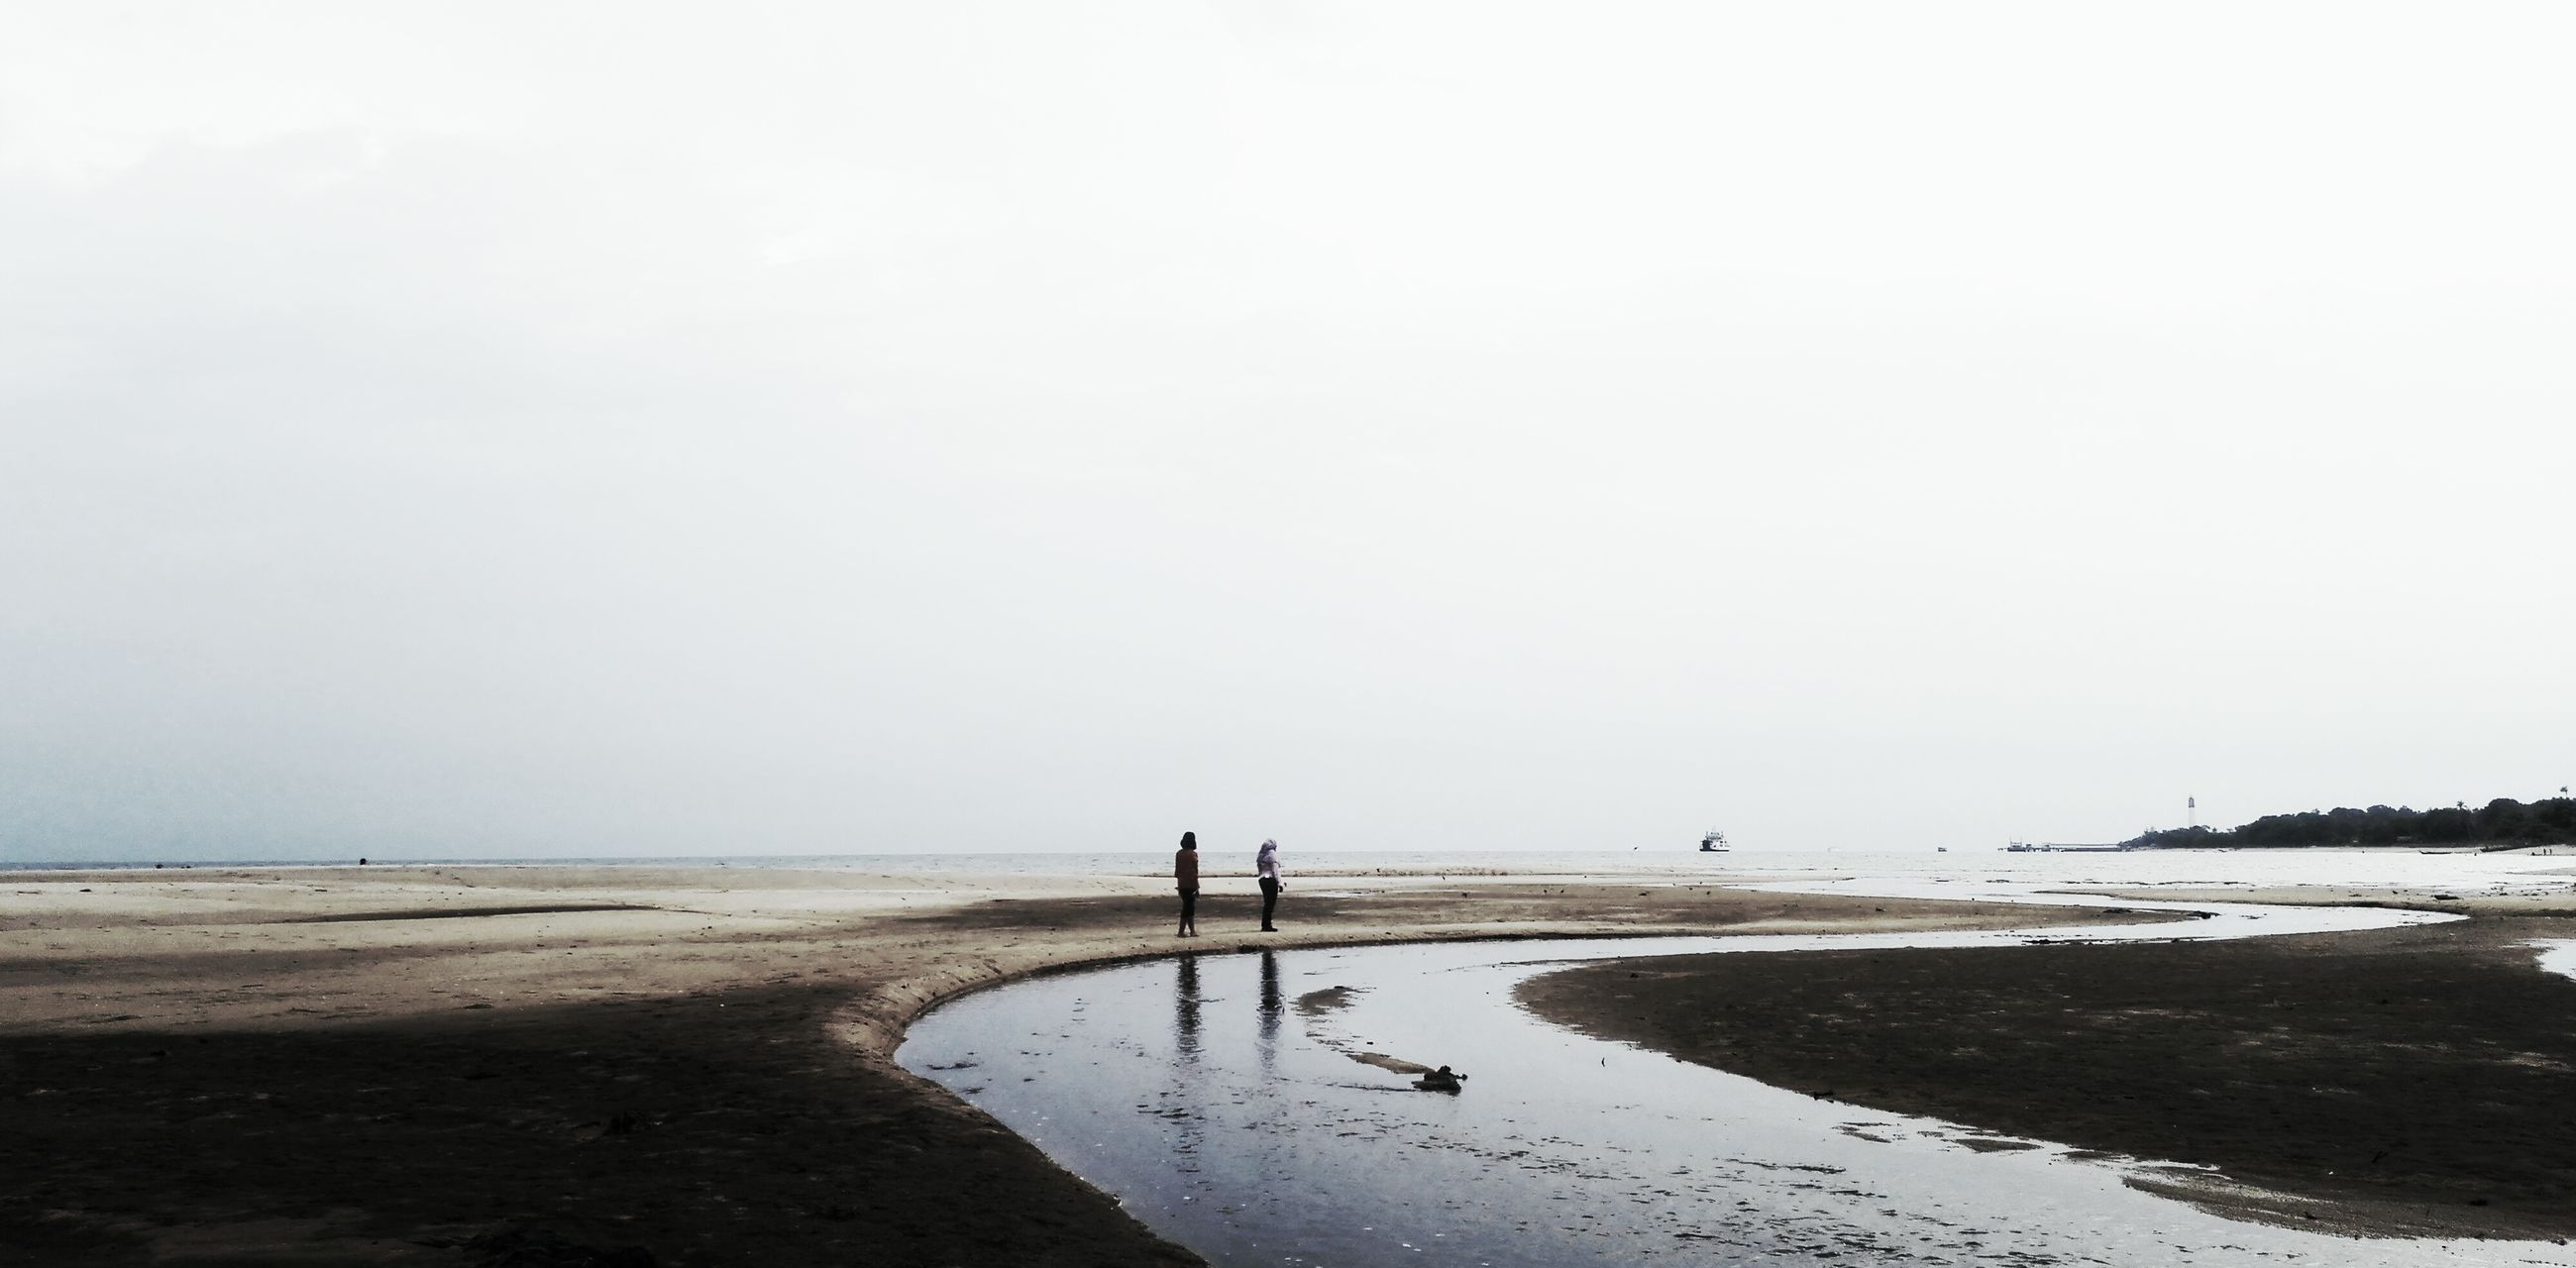 water, beach, clear sky, sea, copy space, tranquil scene, tranquility, sand, shore, scenics, nature, horizon over water, beauty in nature, men, unrecognizable person, silhouette, incidental people, leisure activity